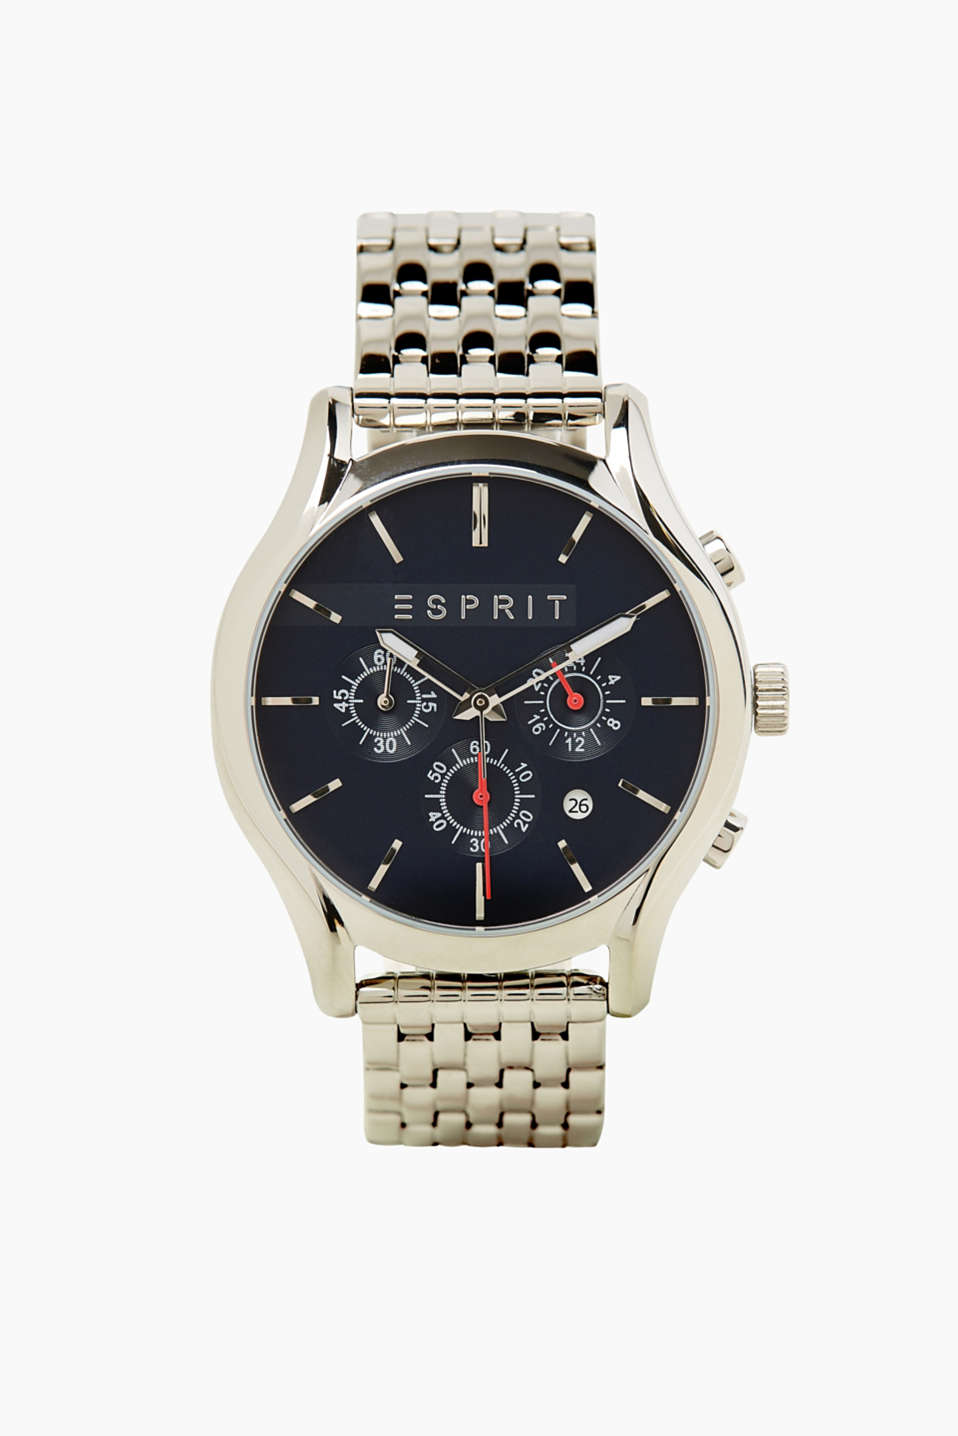 Esprit - Modern mens watch in stainless steel